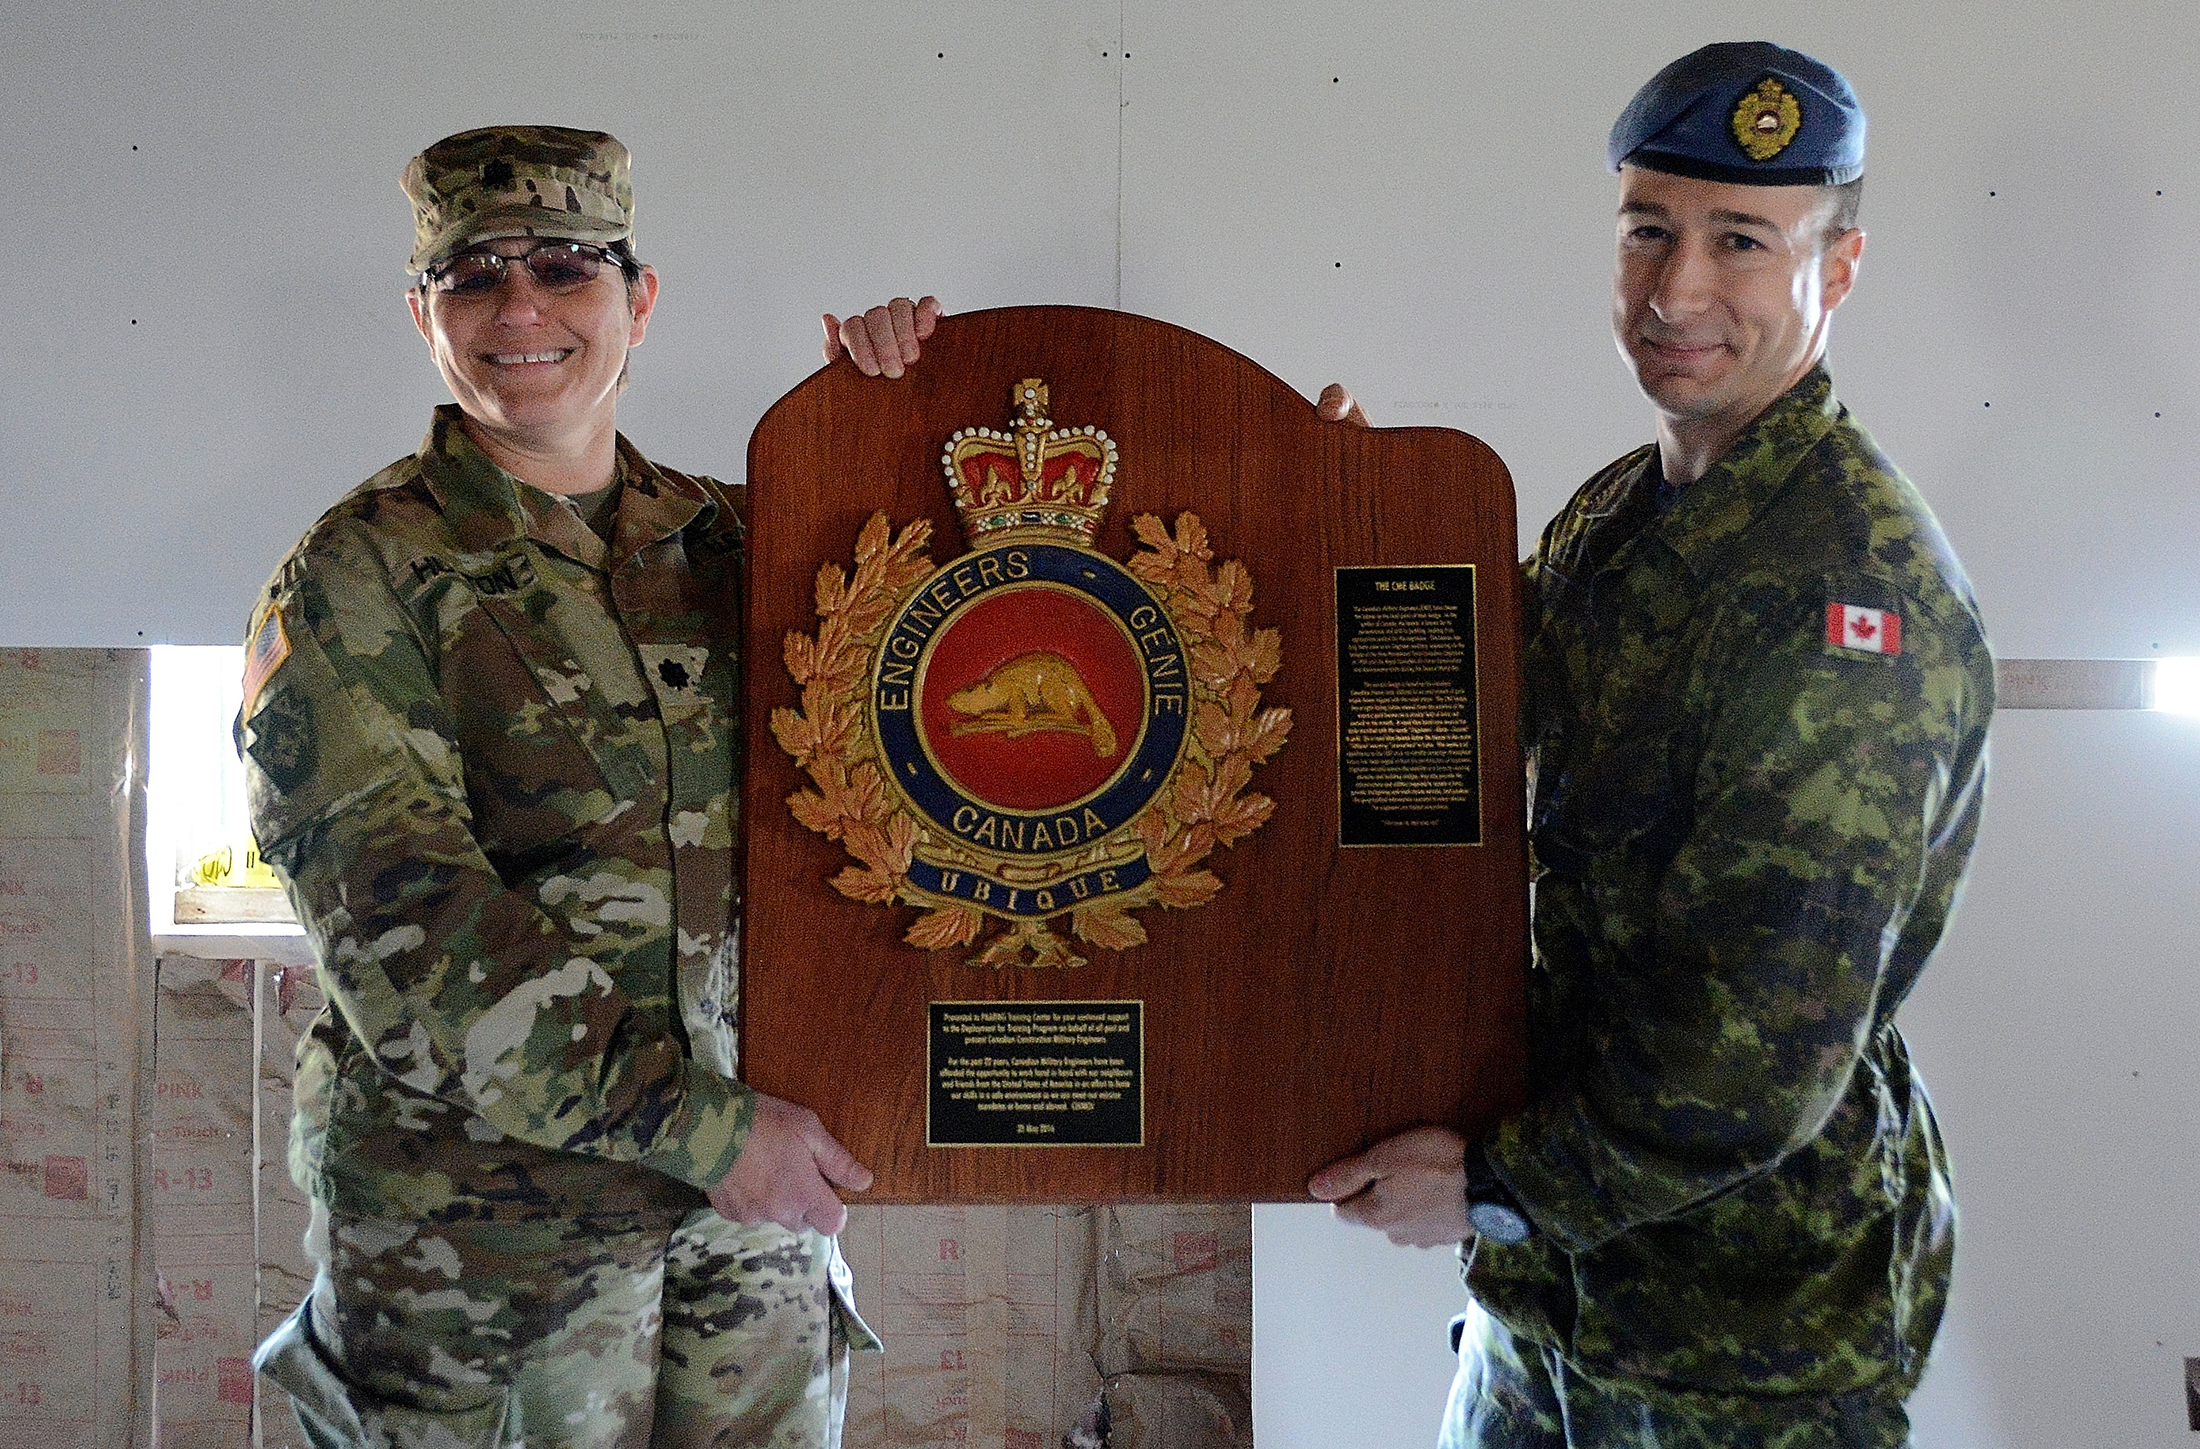 Royal Canadian Air Force Lieutenant-Colonel Jonathan Michaud (right), deputy director construction engineers at 1 Canadian Air Division Headquarters in Winnipeg, presents a commemorative plaque displaying the Canadian Forces' engineers badge to United States Army Lieutenant-Colonel Daneen Hutton, director of public works at Fort Indiantown Gap. The Canadian engineers have been coming to train at Fort Indiantown Gap for more than 20 years. PHOTO: Major Angela King-Sweigart, U.S. Army National Guard